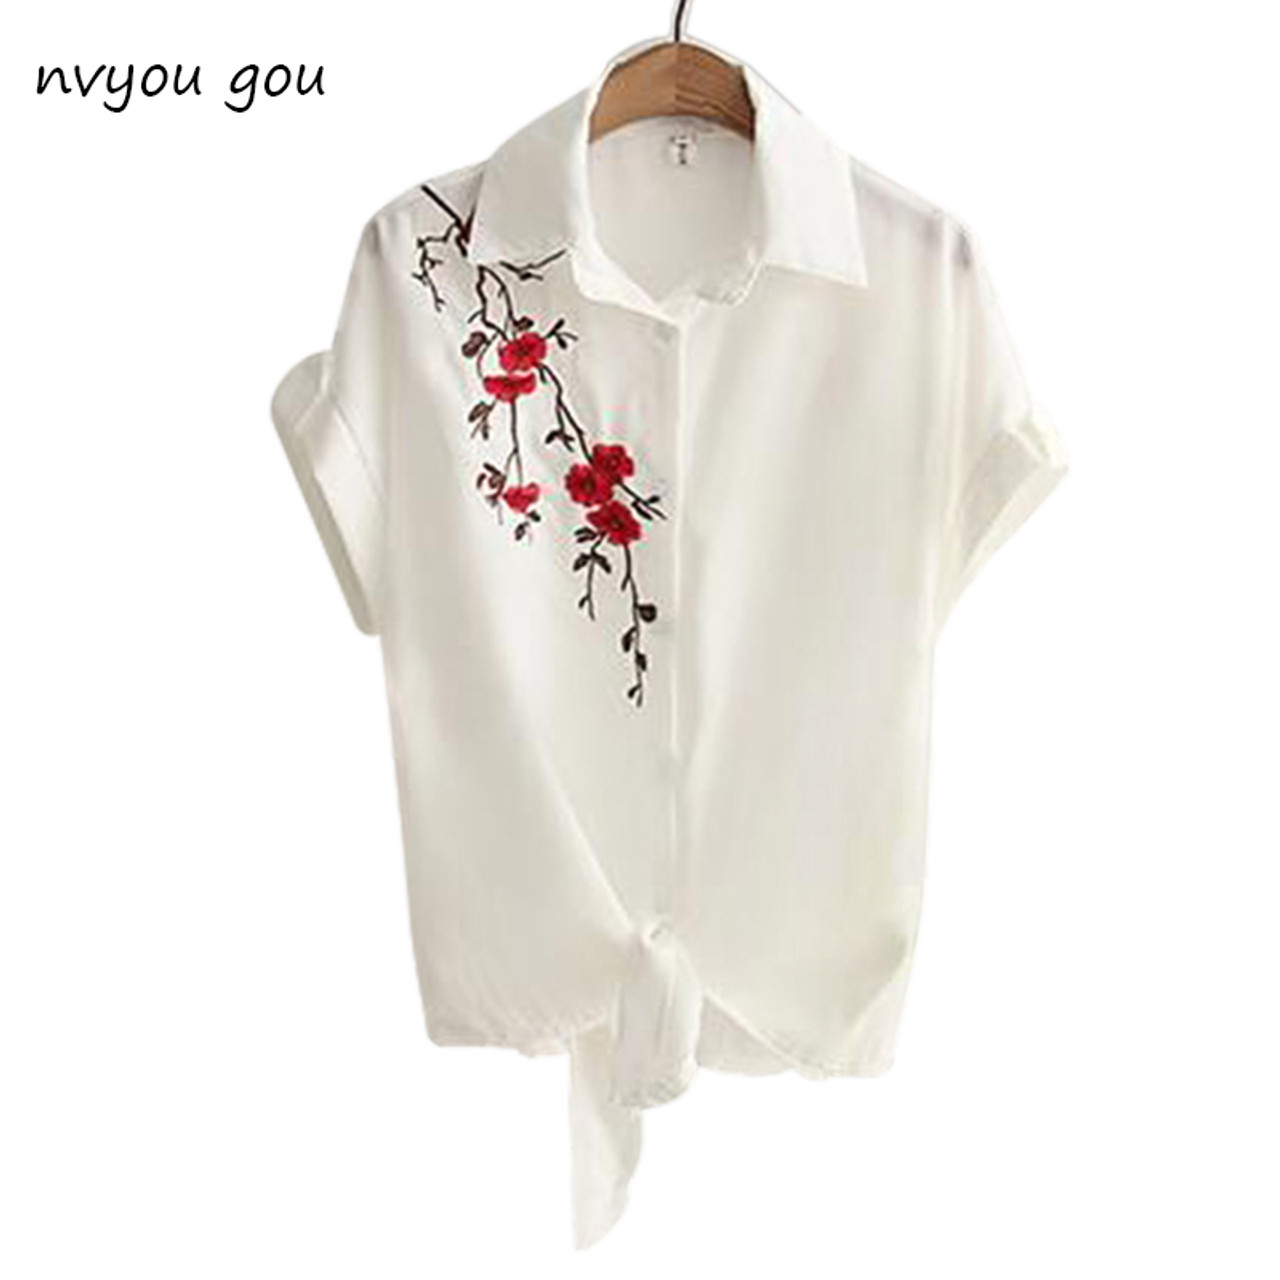 764e36e4162 2018 Top Summer Women Casual Tops Short Sleeve Embroidery White Top Blouses  Shirts Sexy Kimono Loose ...